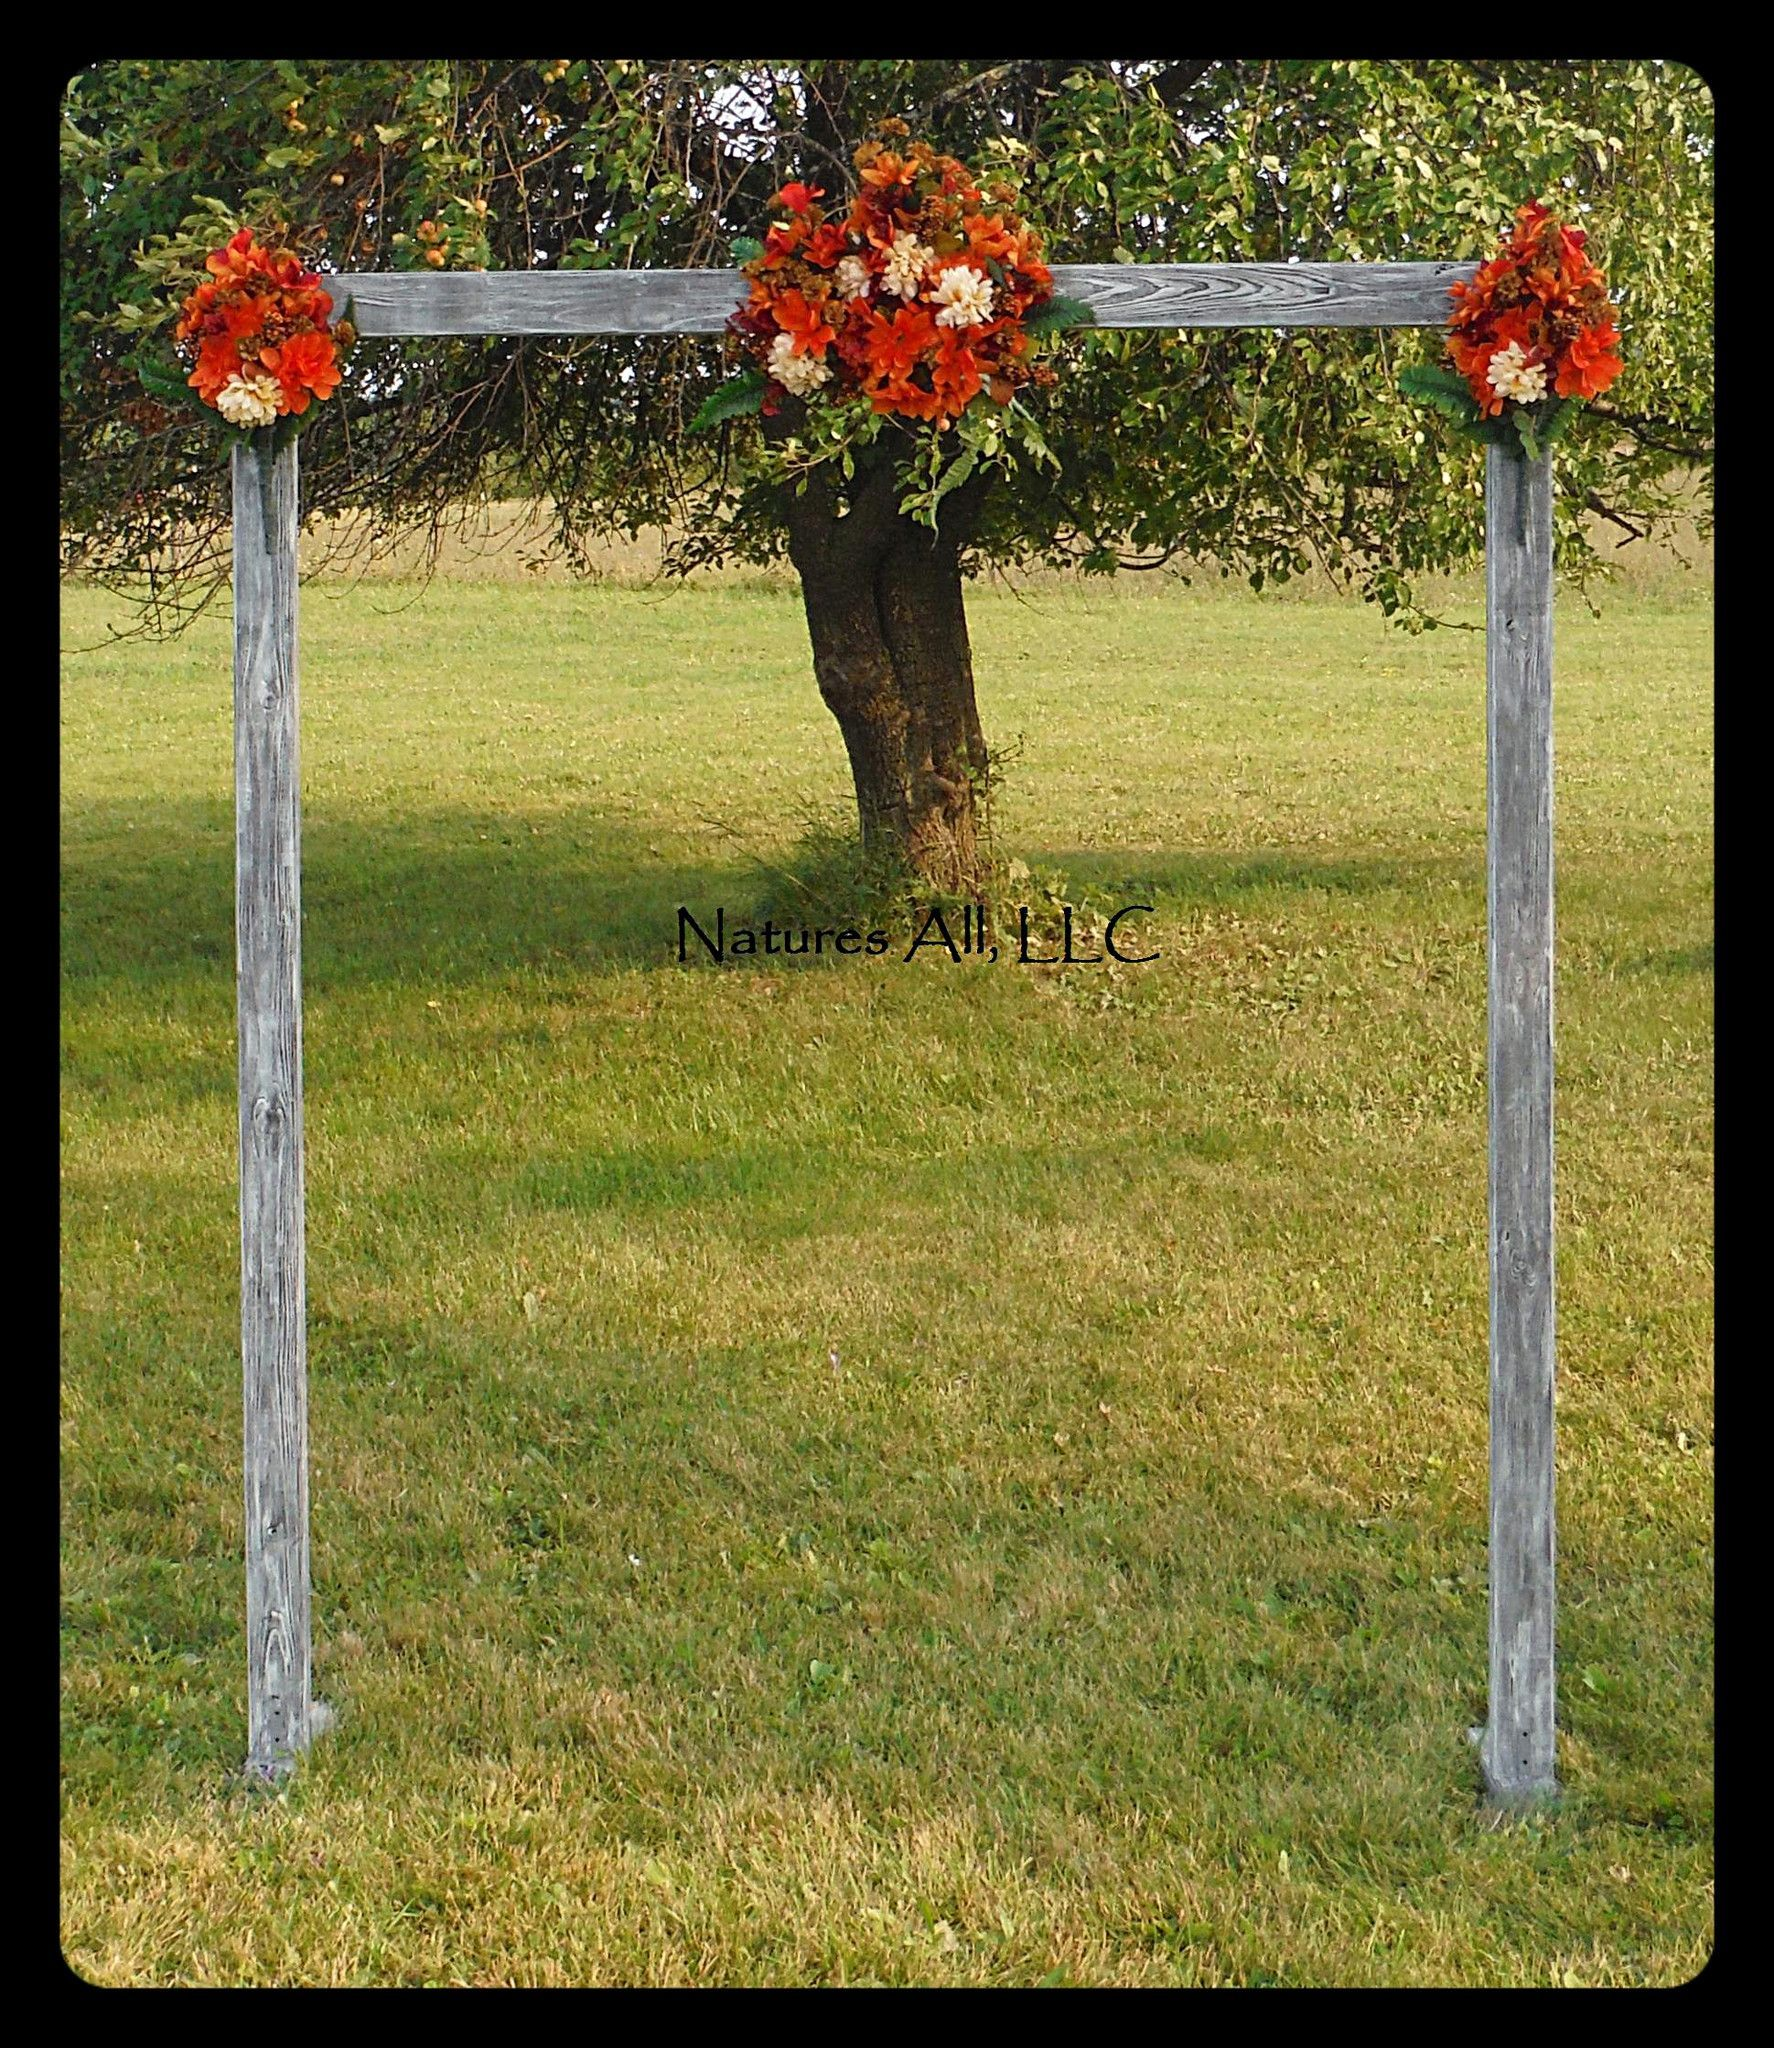 Rustic Wood Wedding Arch Arbor Complete Kit For Indoor Or Outdoor Use Country Backdrop Weathered Gray Shipping Included